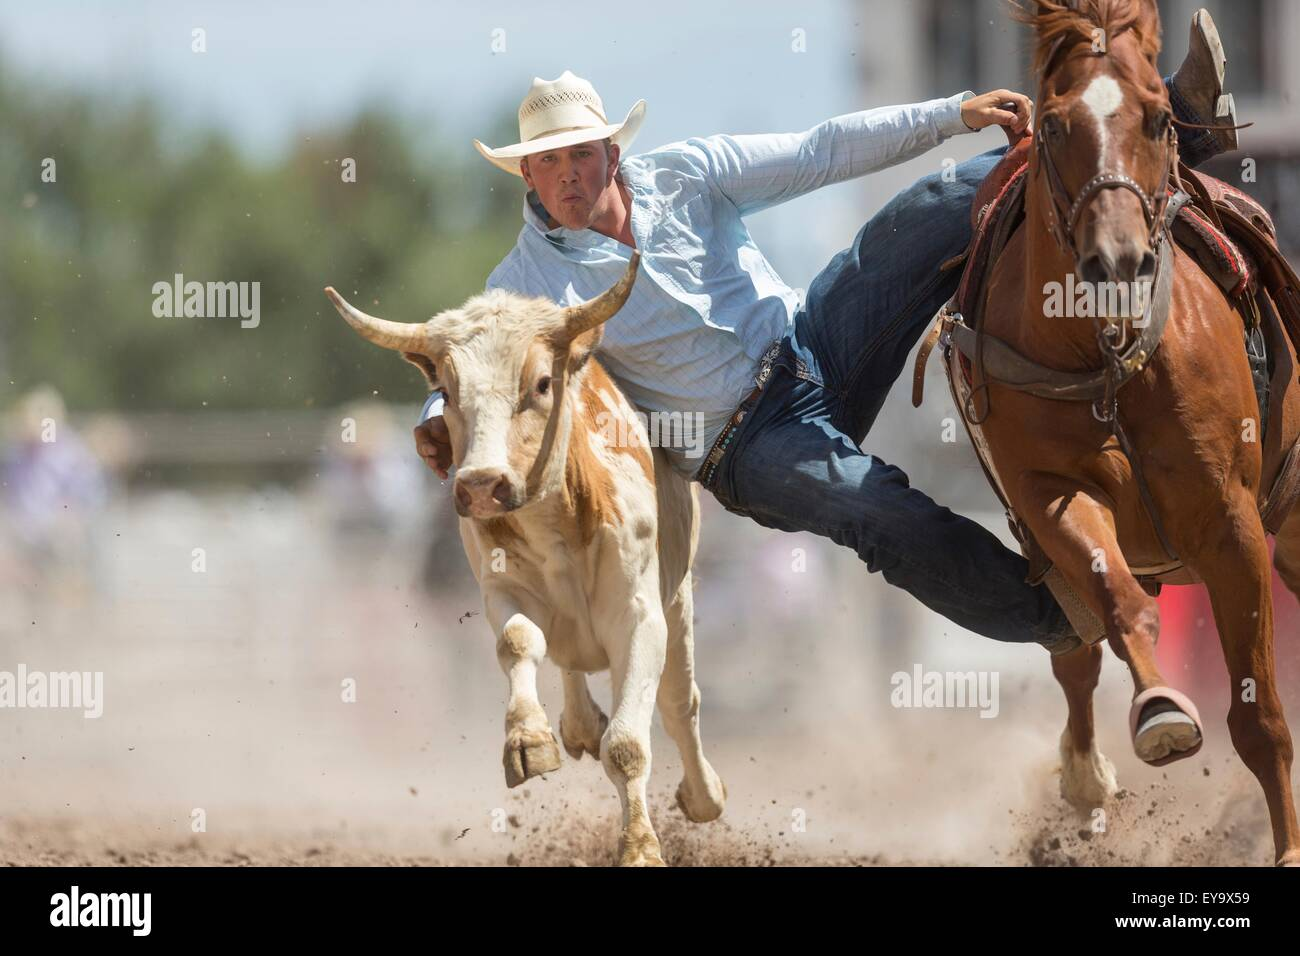 Cheyenne, Wyoming, USA. 24th July, 2015. Steer Wrestler Garrett Smith of Rexburg, Idaho grabs the horns of a steer - Stock Image